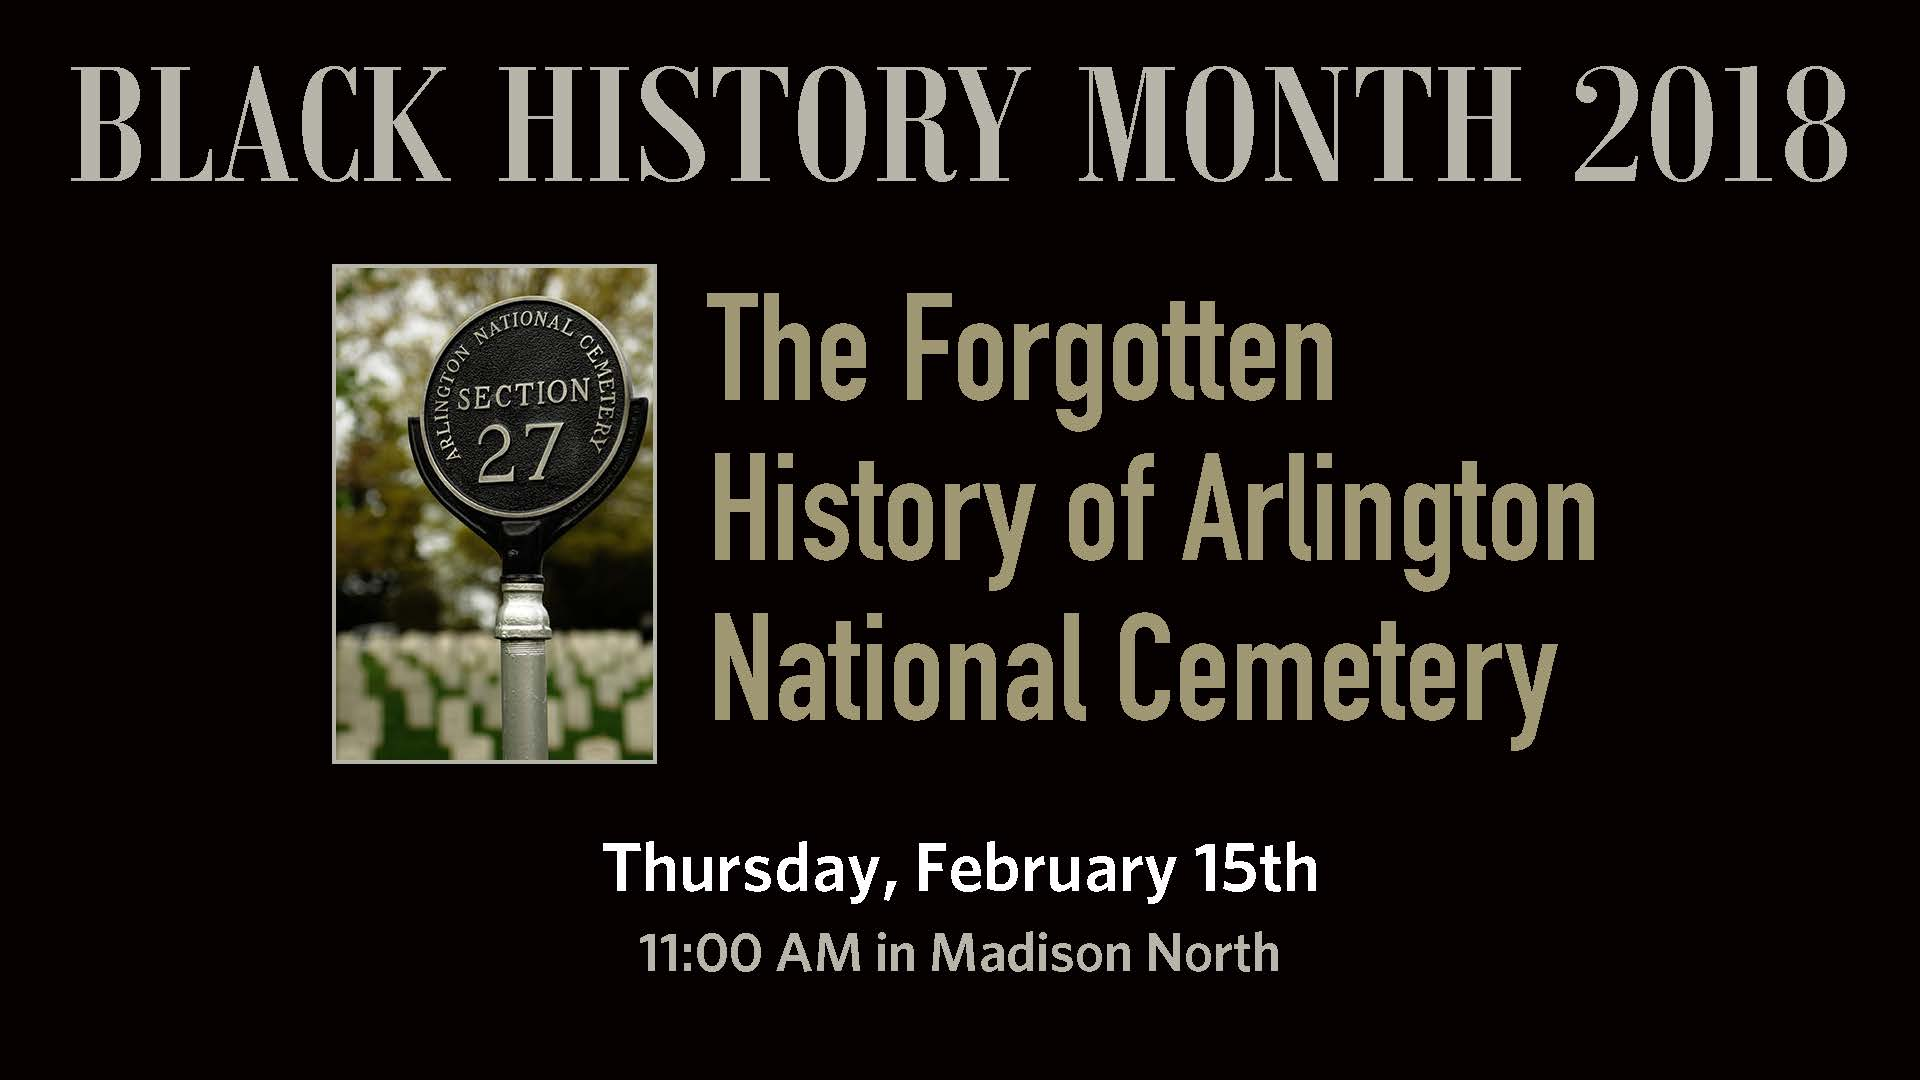 """Black History Month Author Meet and Greet: Ric Murphy & Timothy Stephens, Authors of """"Section 27 – The Forgotten History of Arlington National Cemetery"""""""